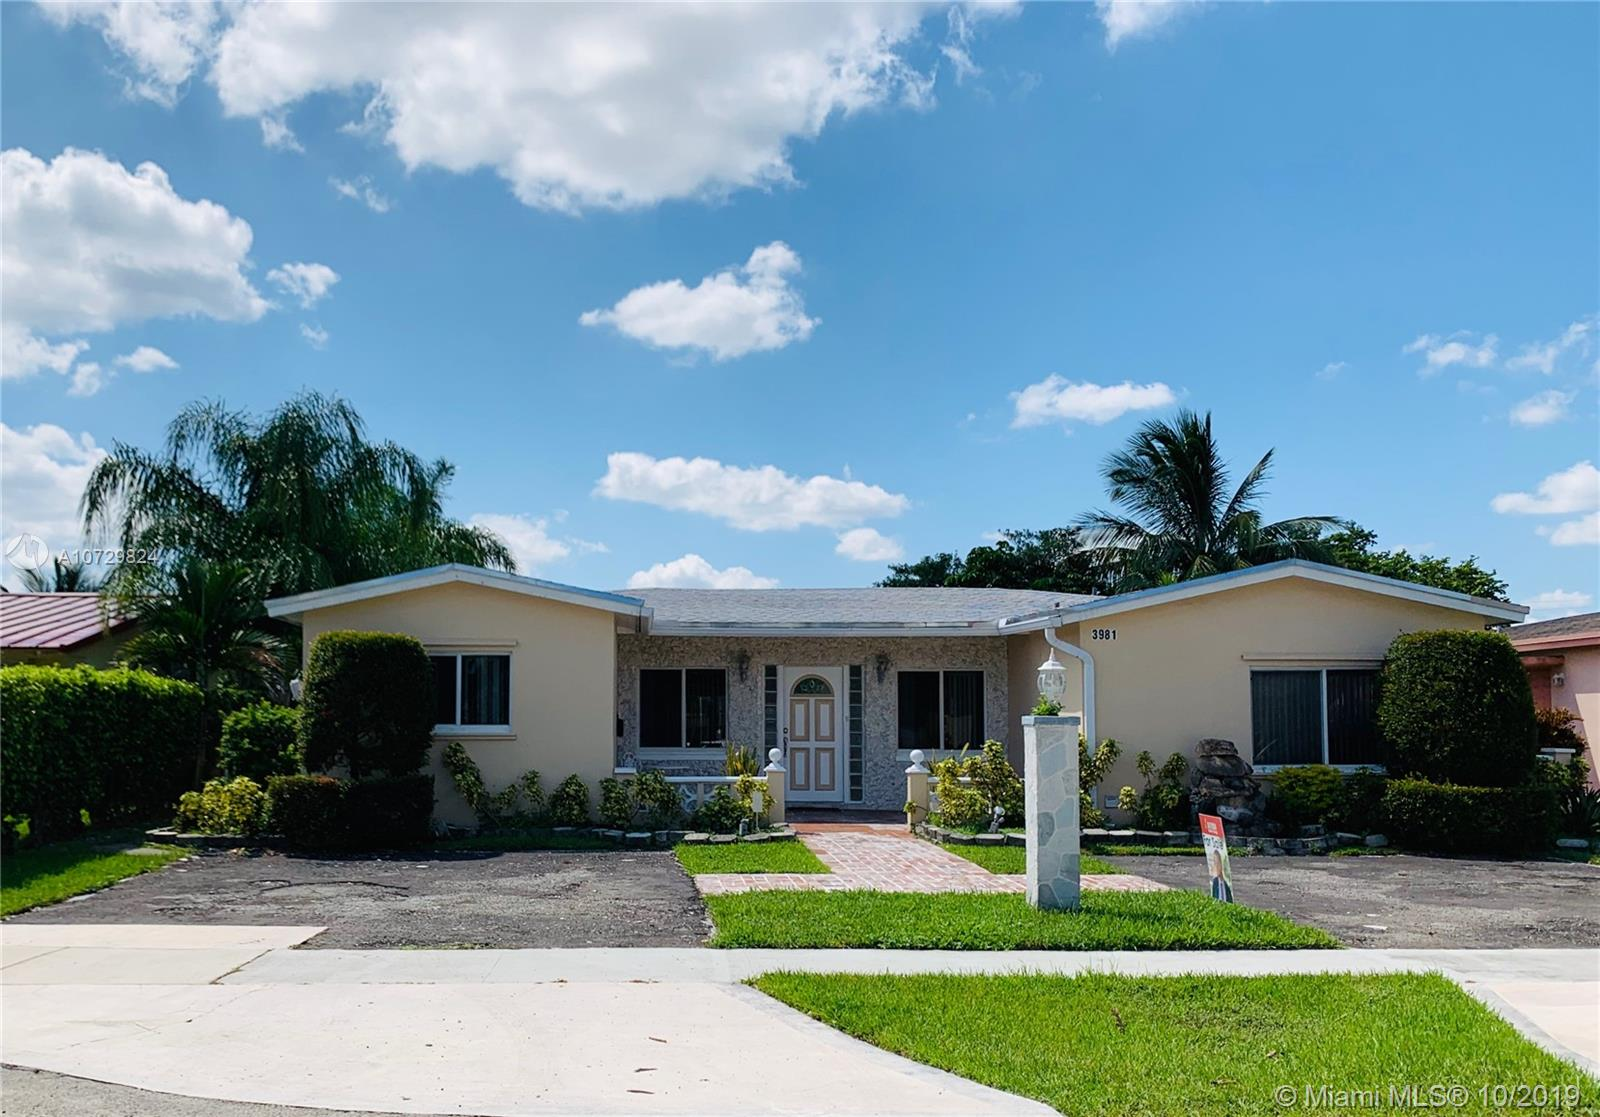 3981 NW 47th Ter, Lauderdale Lakes, FL 33319